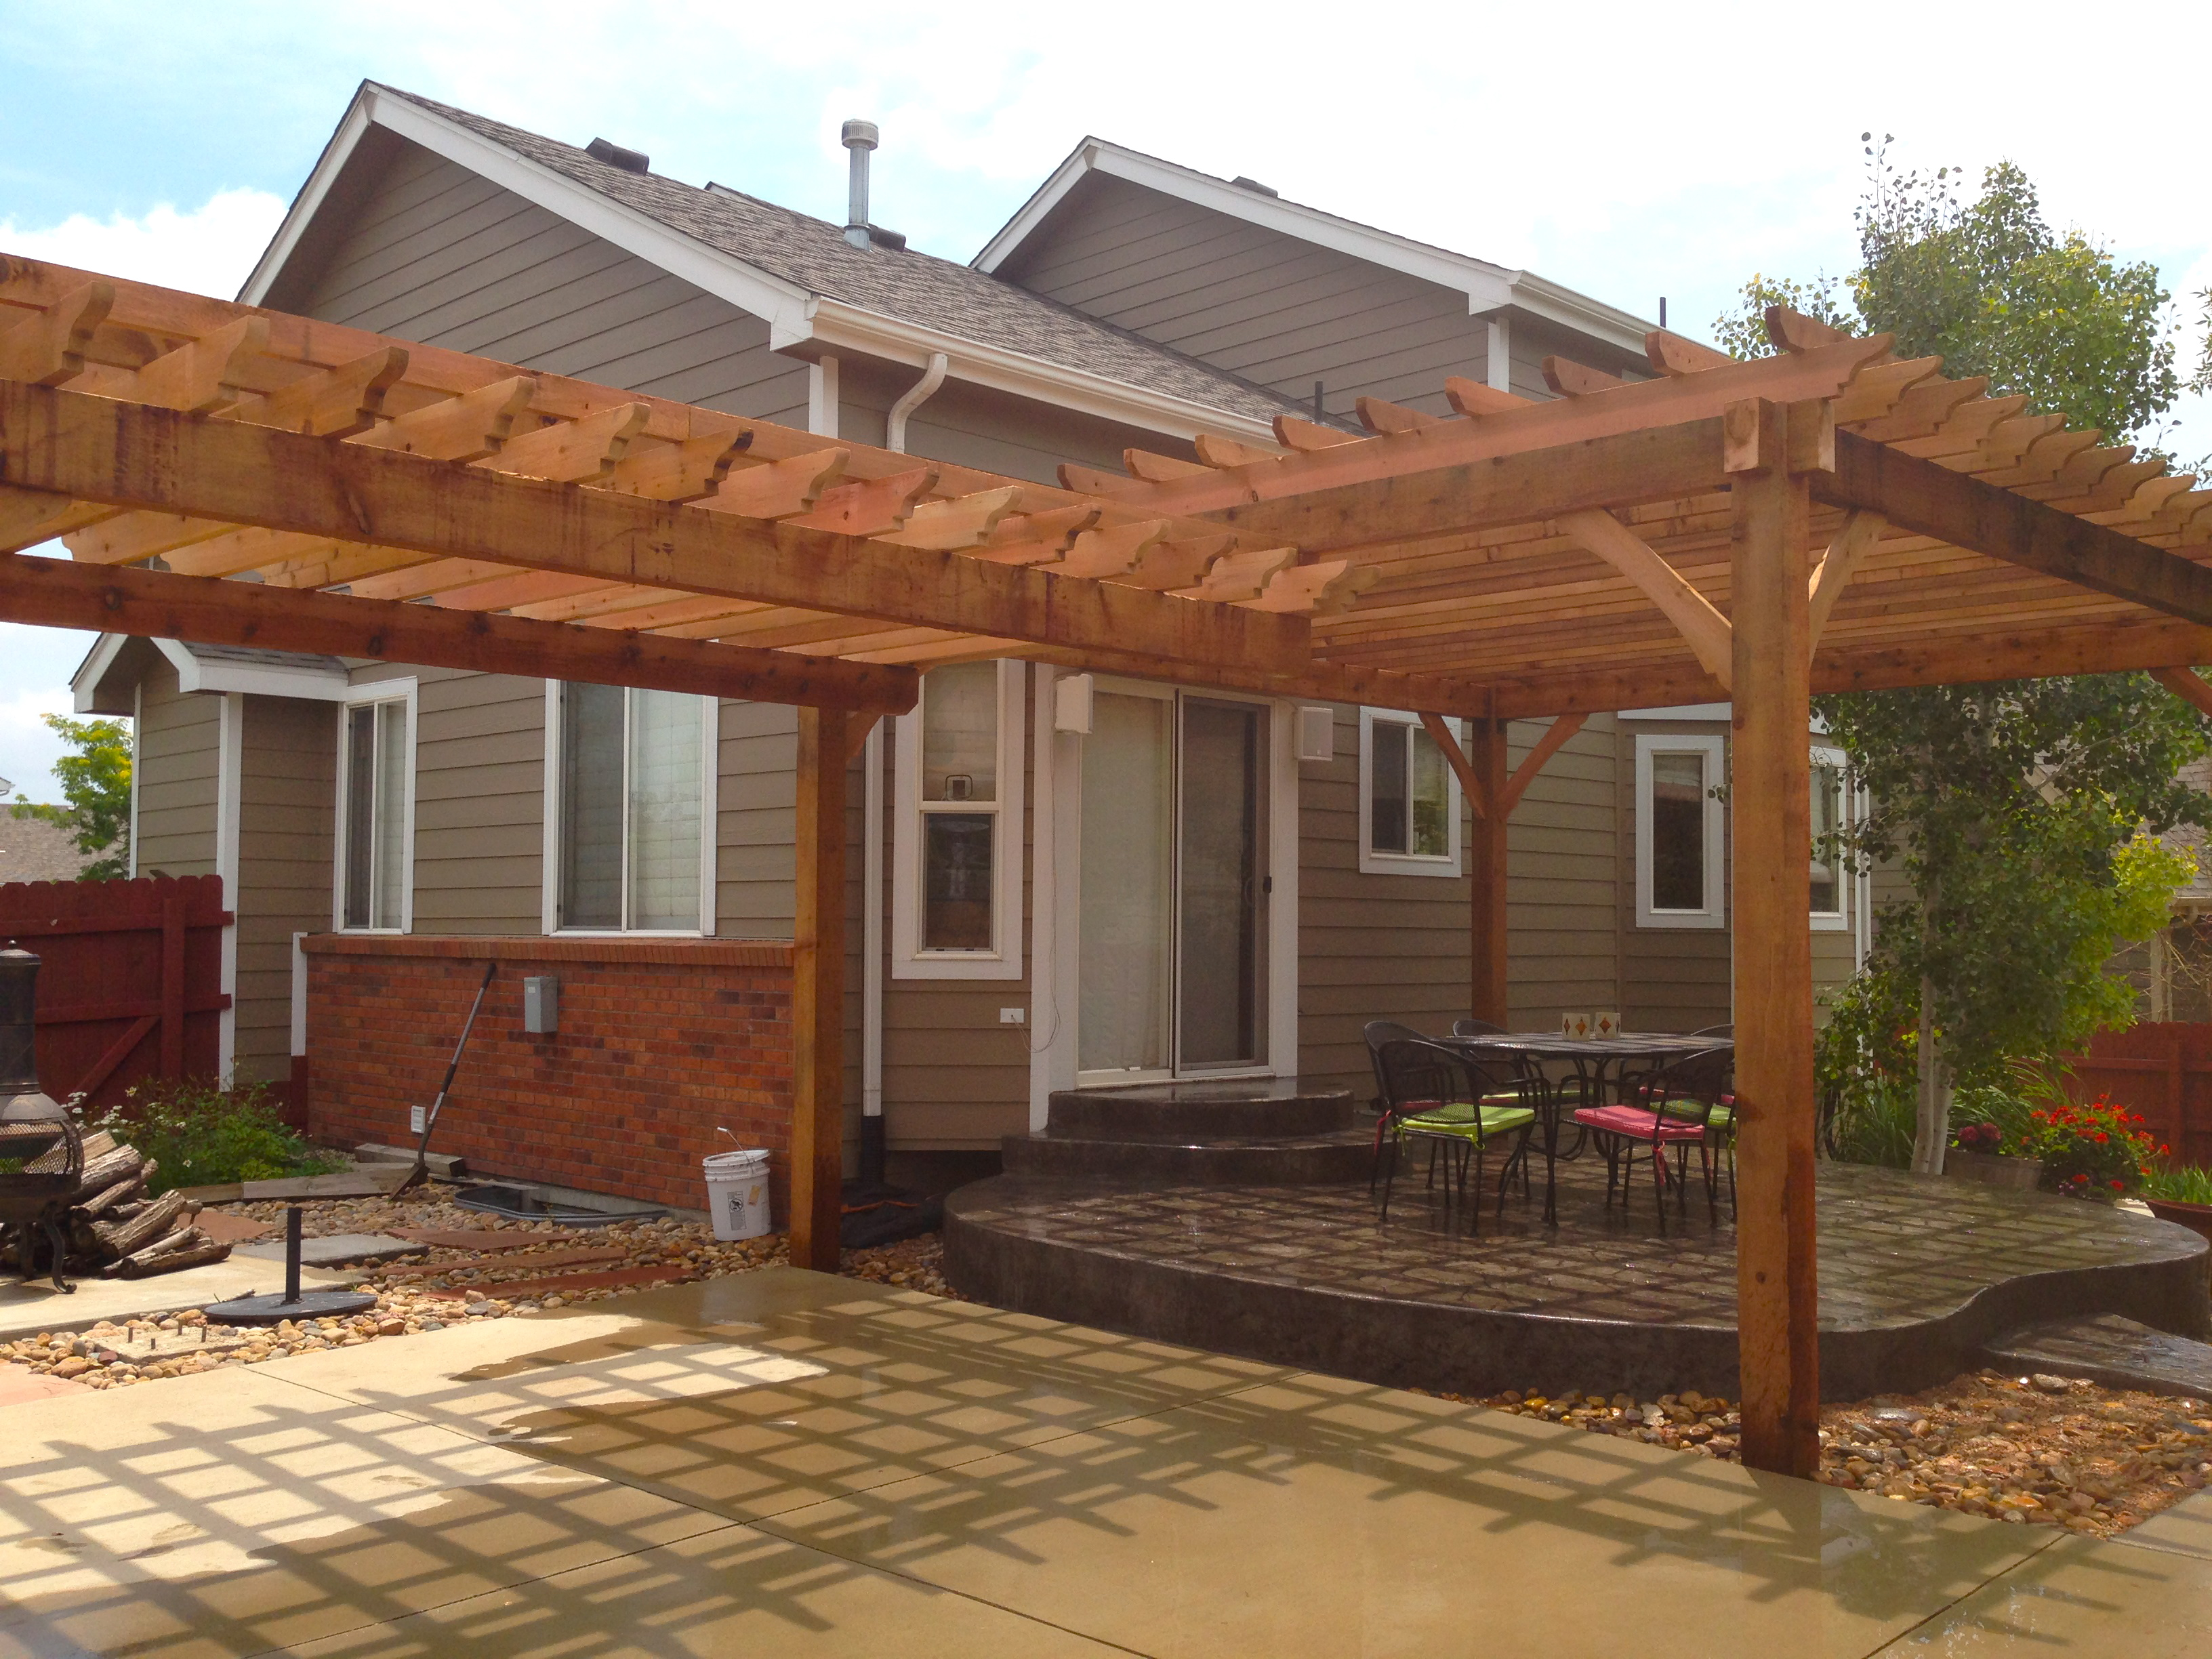 Centered Beam Pergola Built To Follow The Contouring Radius Of The Patio.